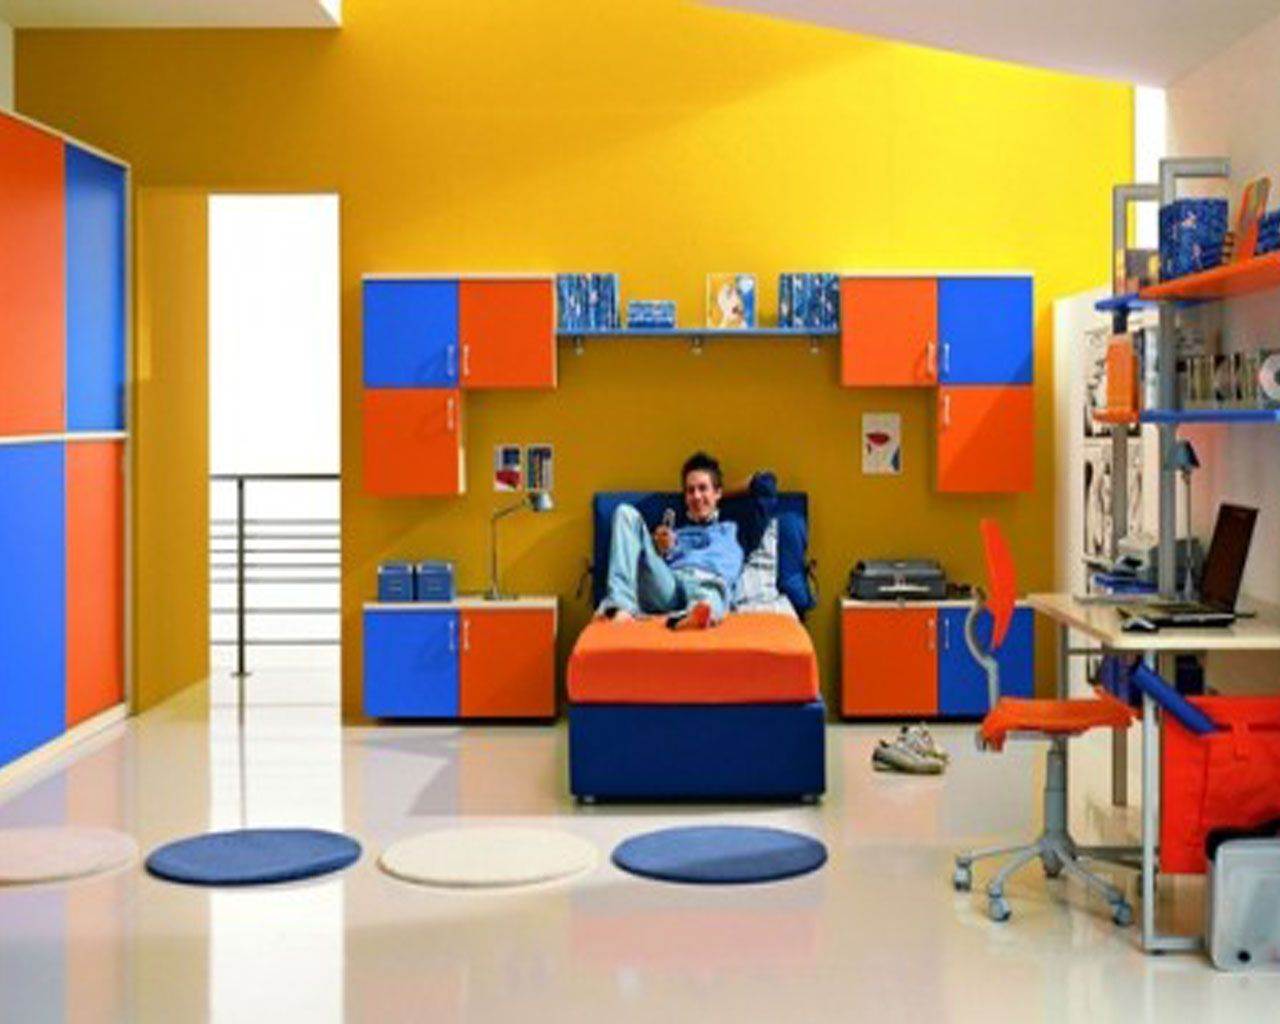 Idea Design Studio idea design studio part iii how to turn your idea into money Boys Bedroom Idea With Yellow Wall Paint Color And Orange Blue Cabinets And